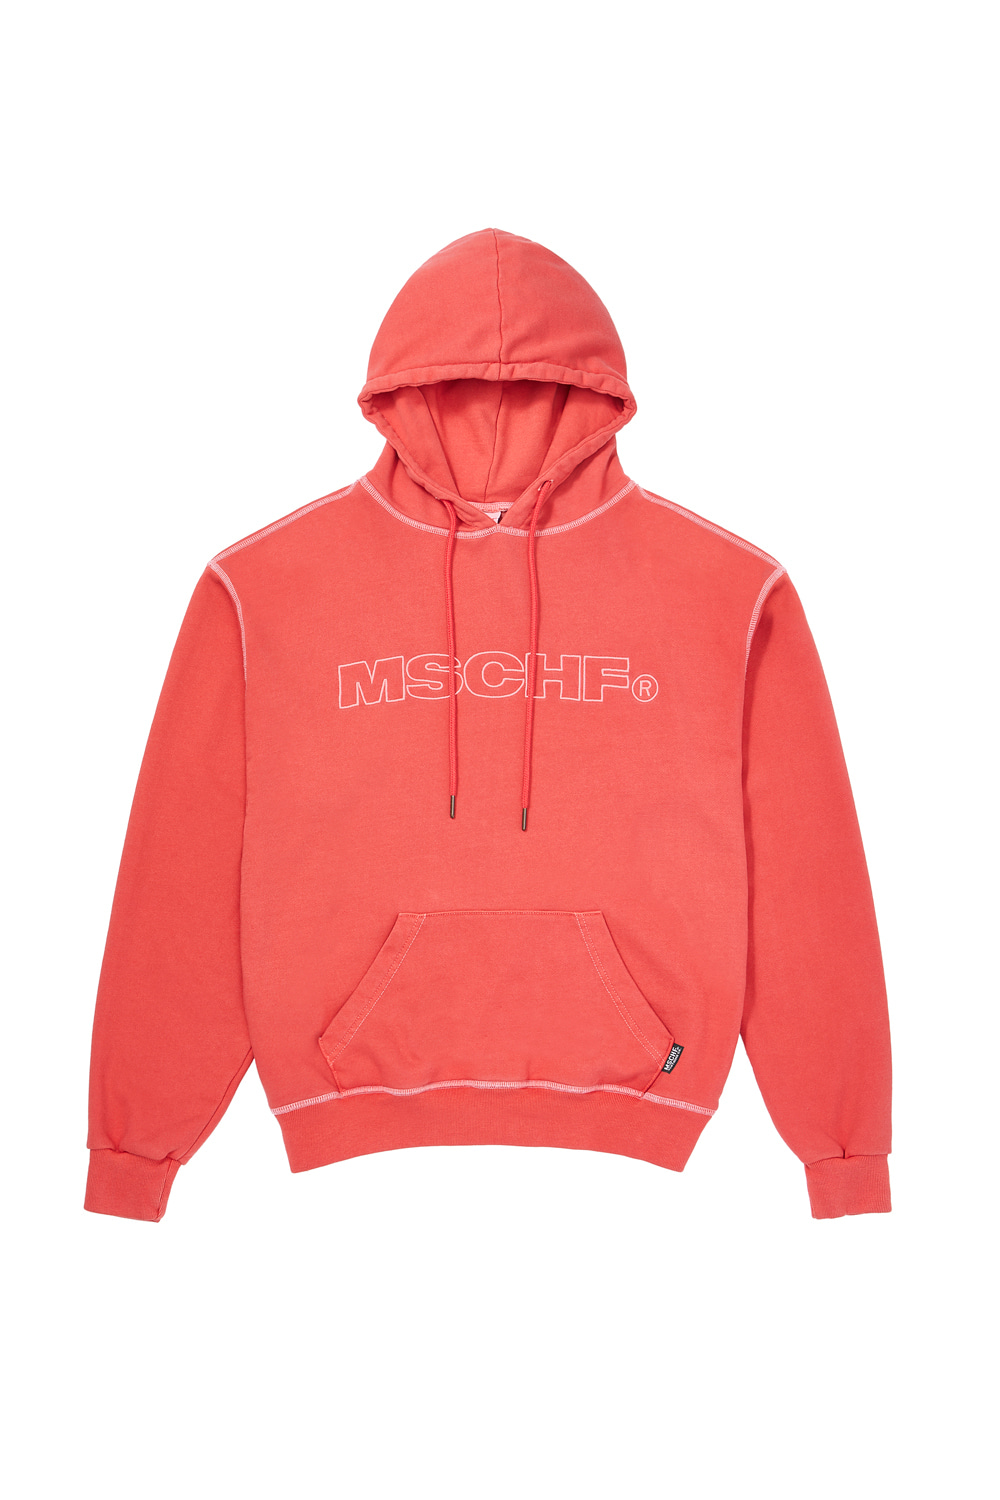 MSCHF_WASHED HOODIE_red orange